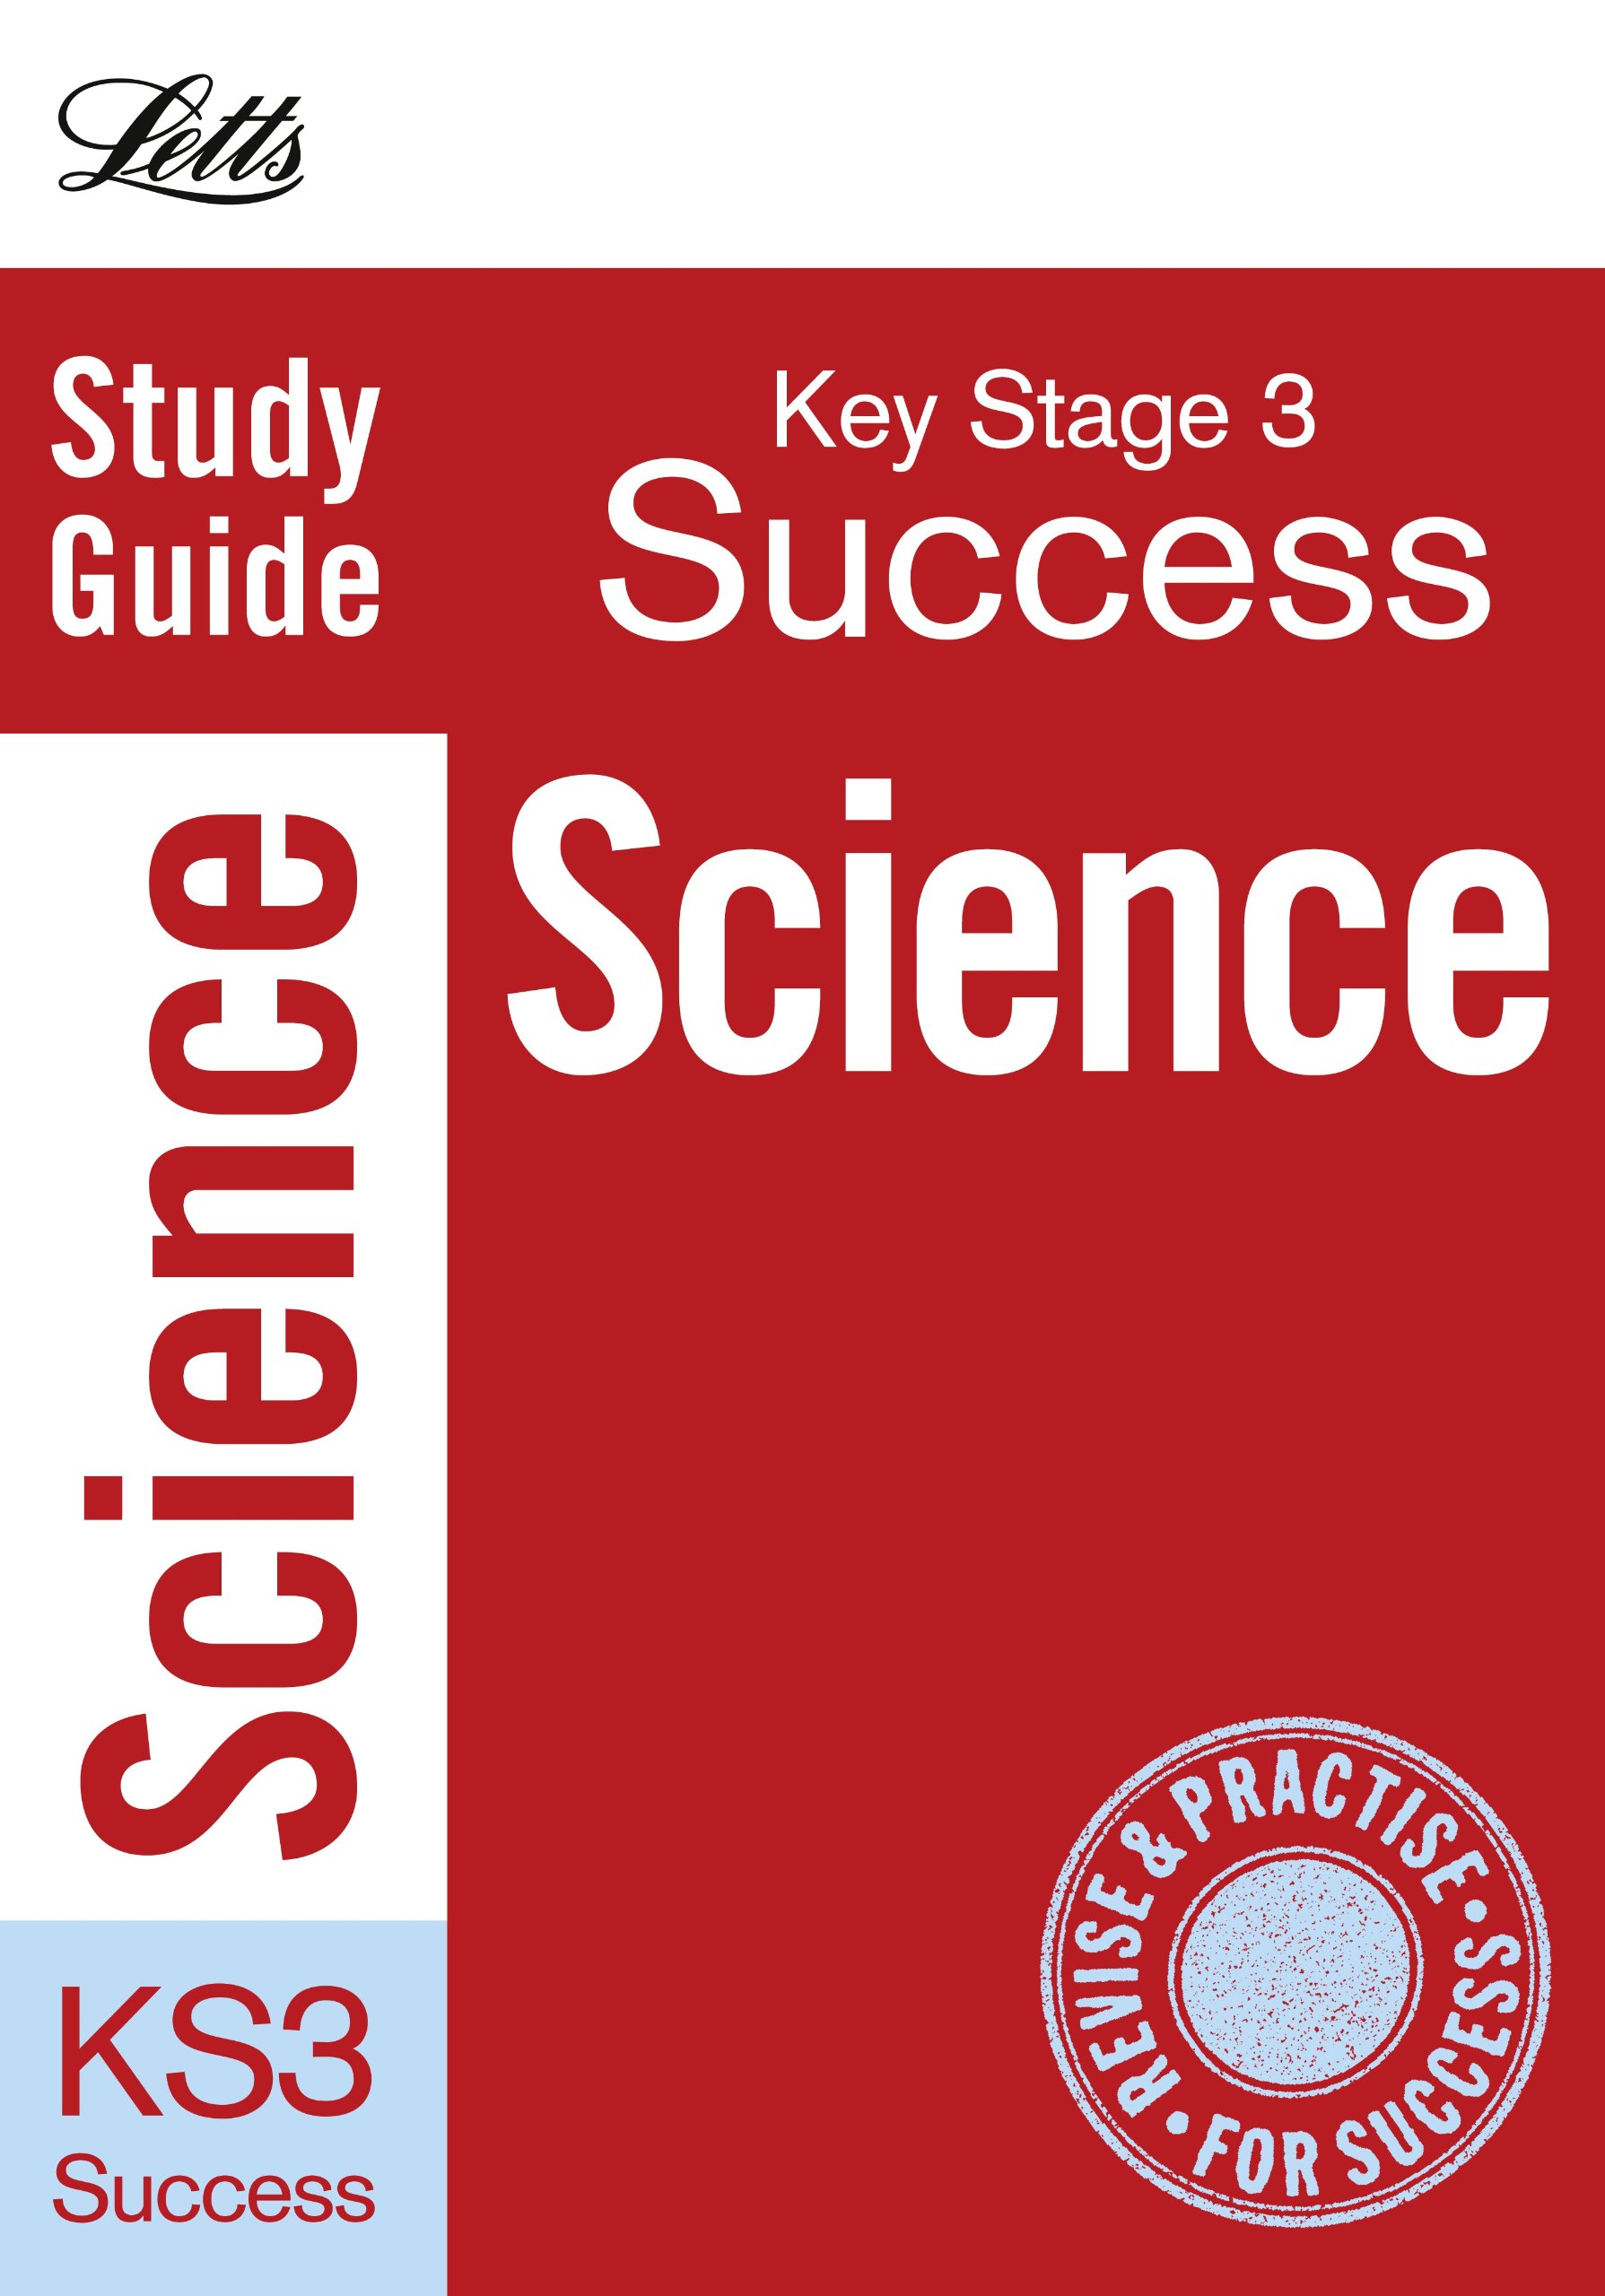 Download Ks3 Science (Letts Key Stage 3 Success) ebook